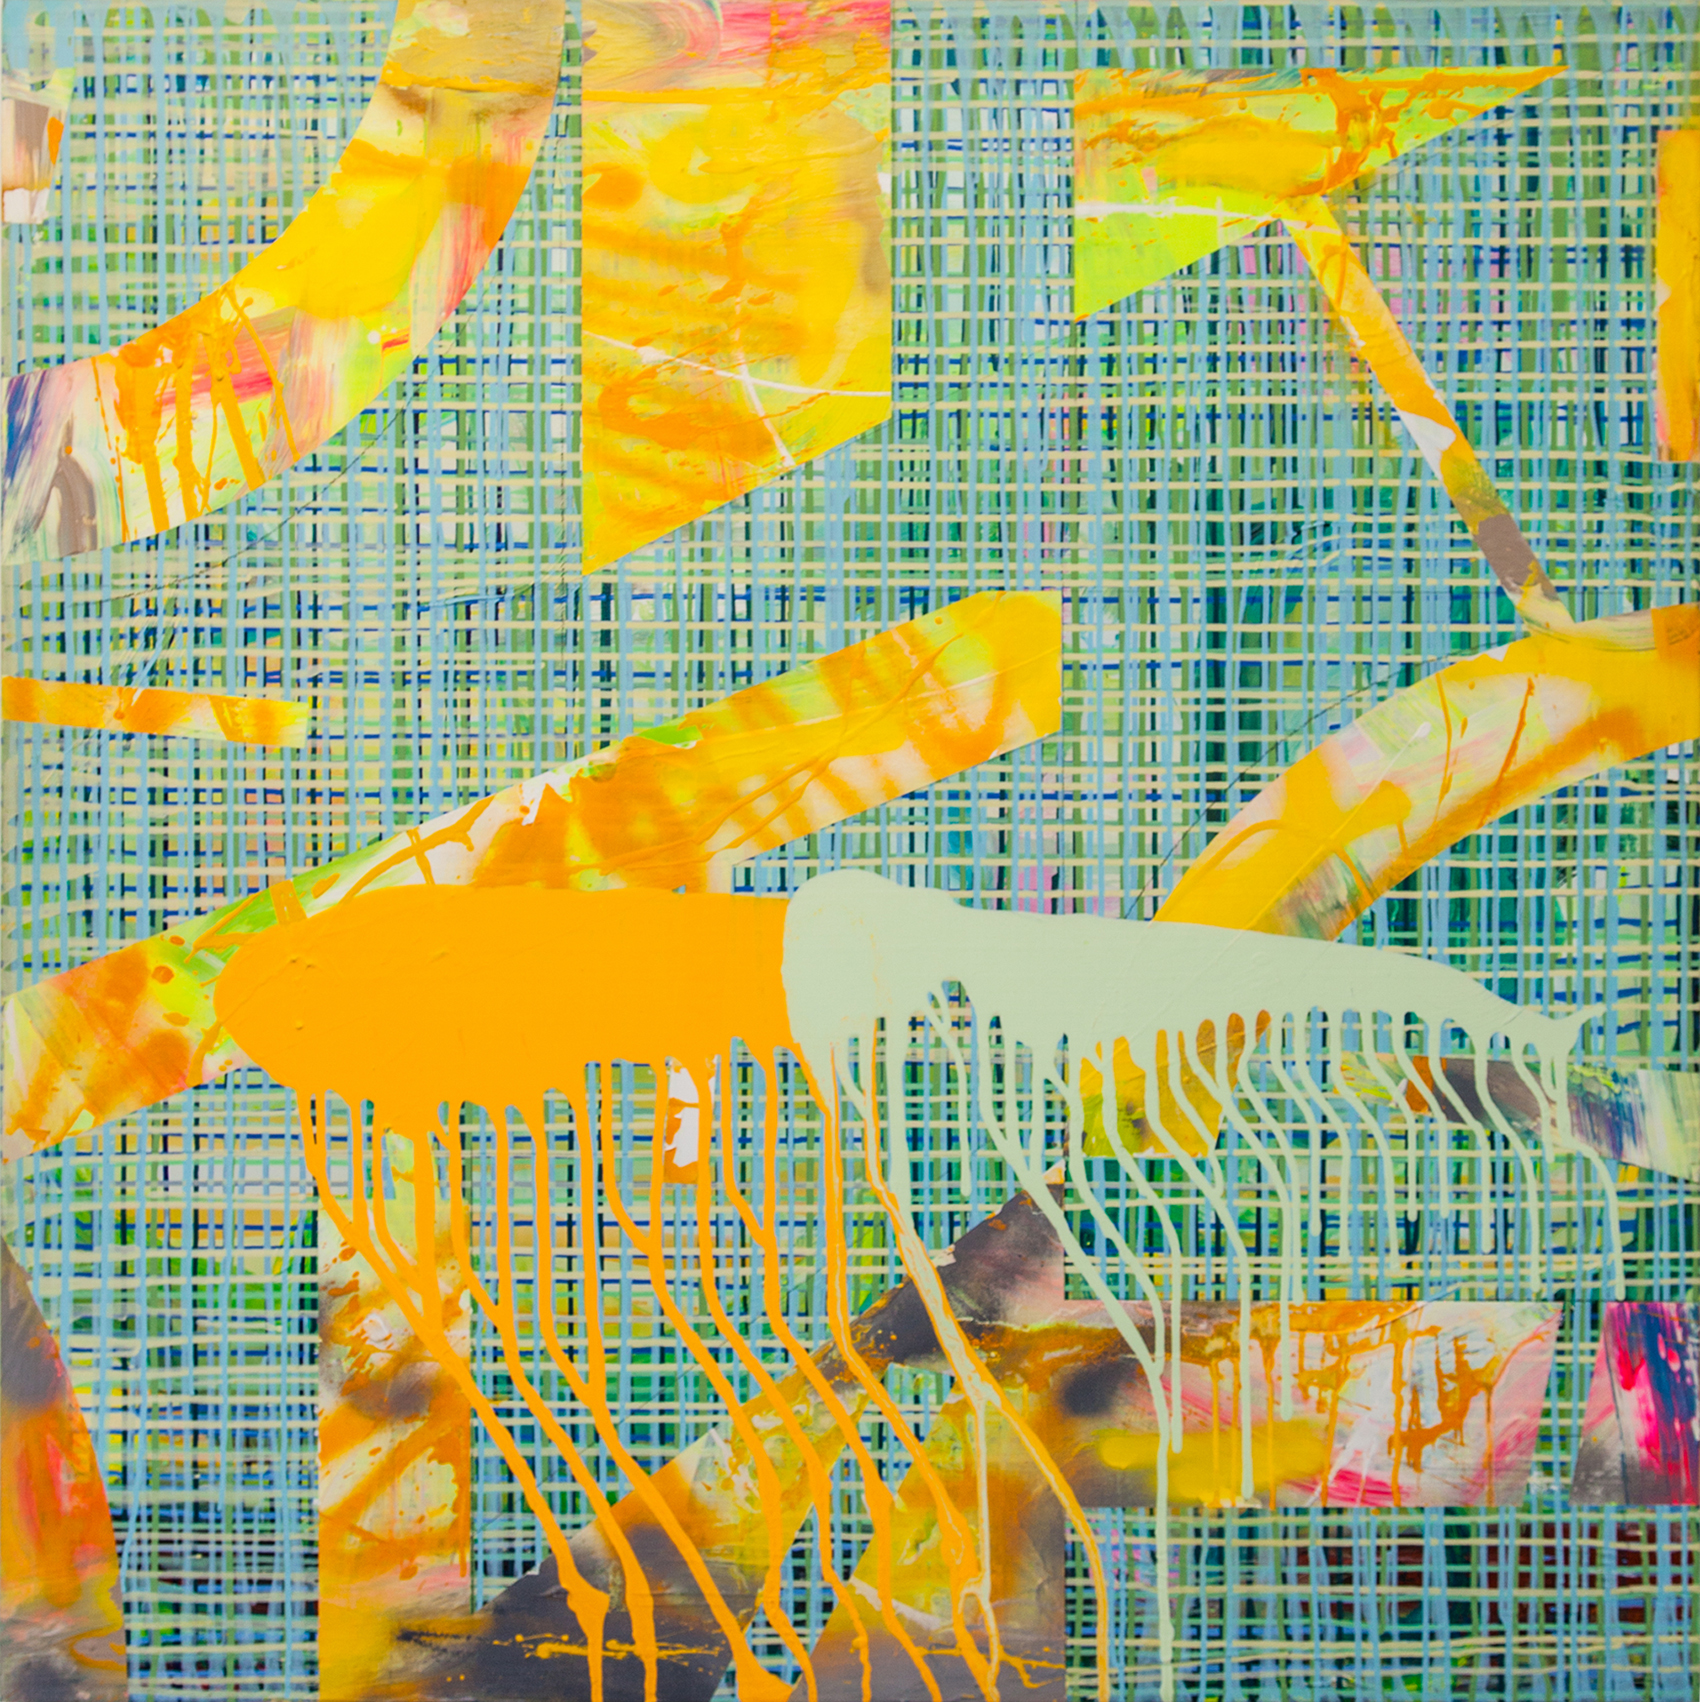 Abstract No.8_48 x 48 inches_Abstract DRIP yellow_48 x 48 inches_at Beauchamp as of July 2017